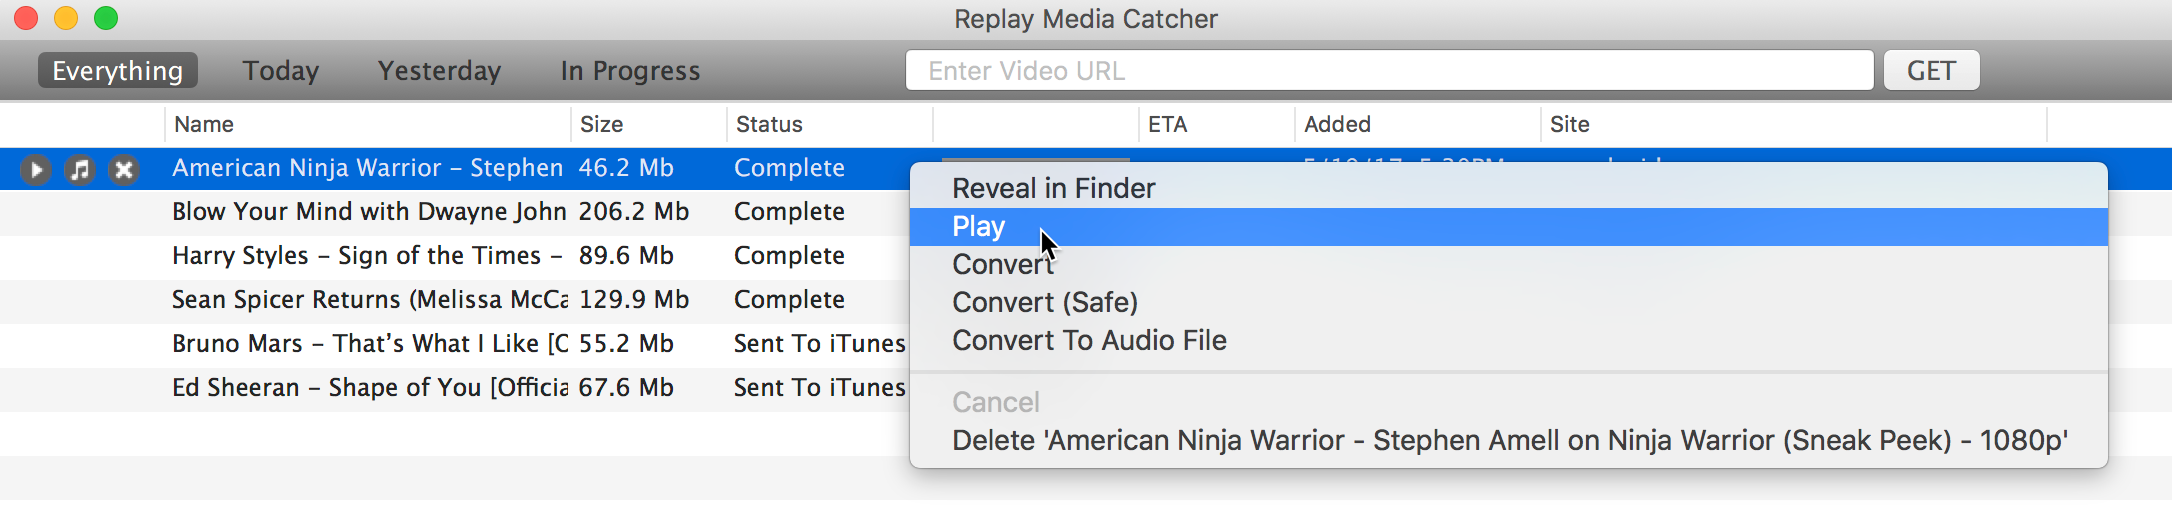 Replay Media Catcher for Mac ver 2 User Guide : Applian